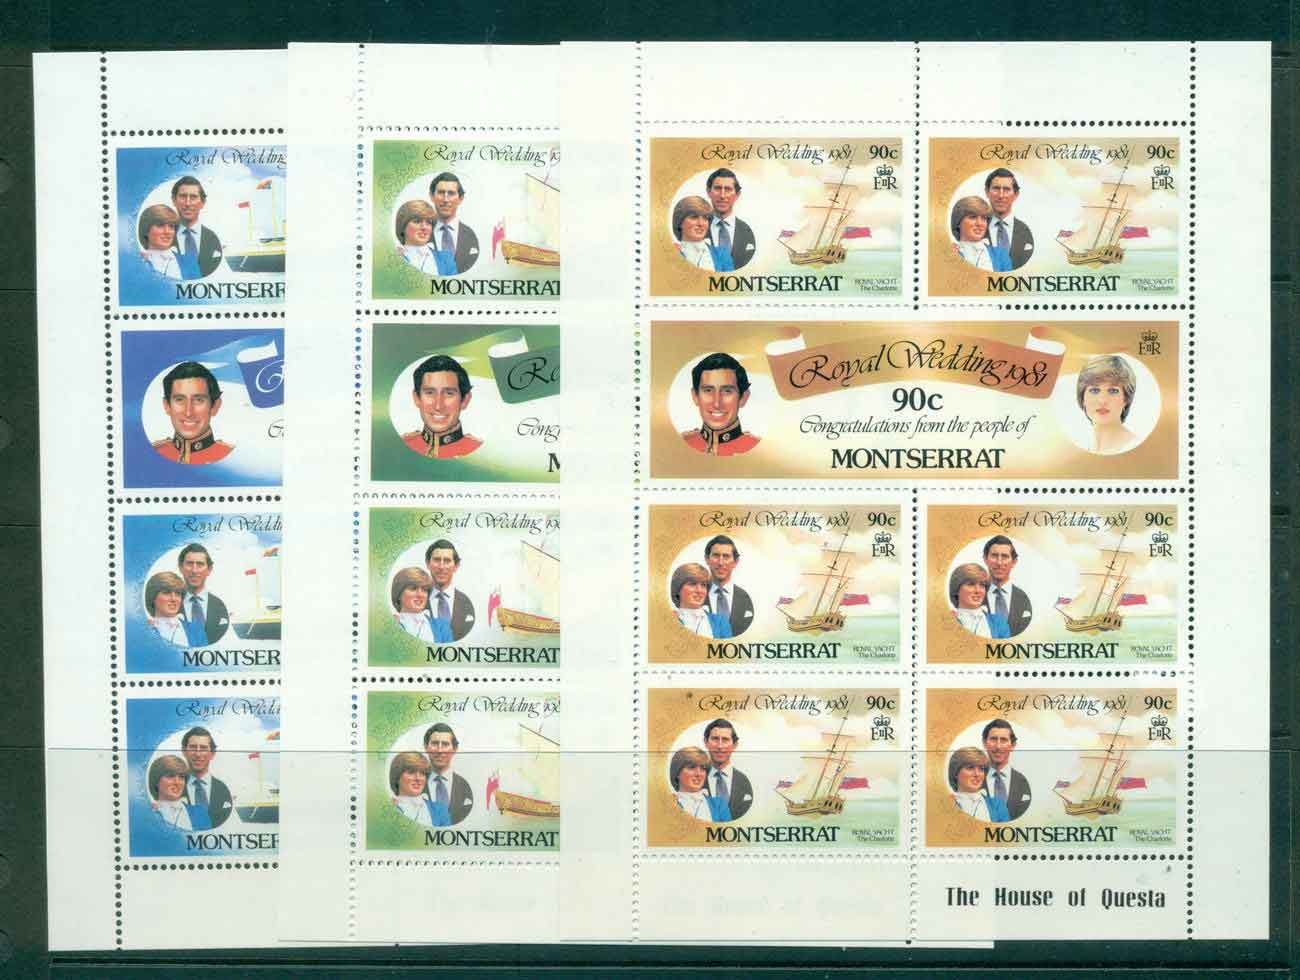 Montserrat 1981 Charles & Diana Wedding 3x Sheetlets MUH Lot45111